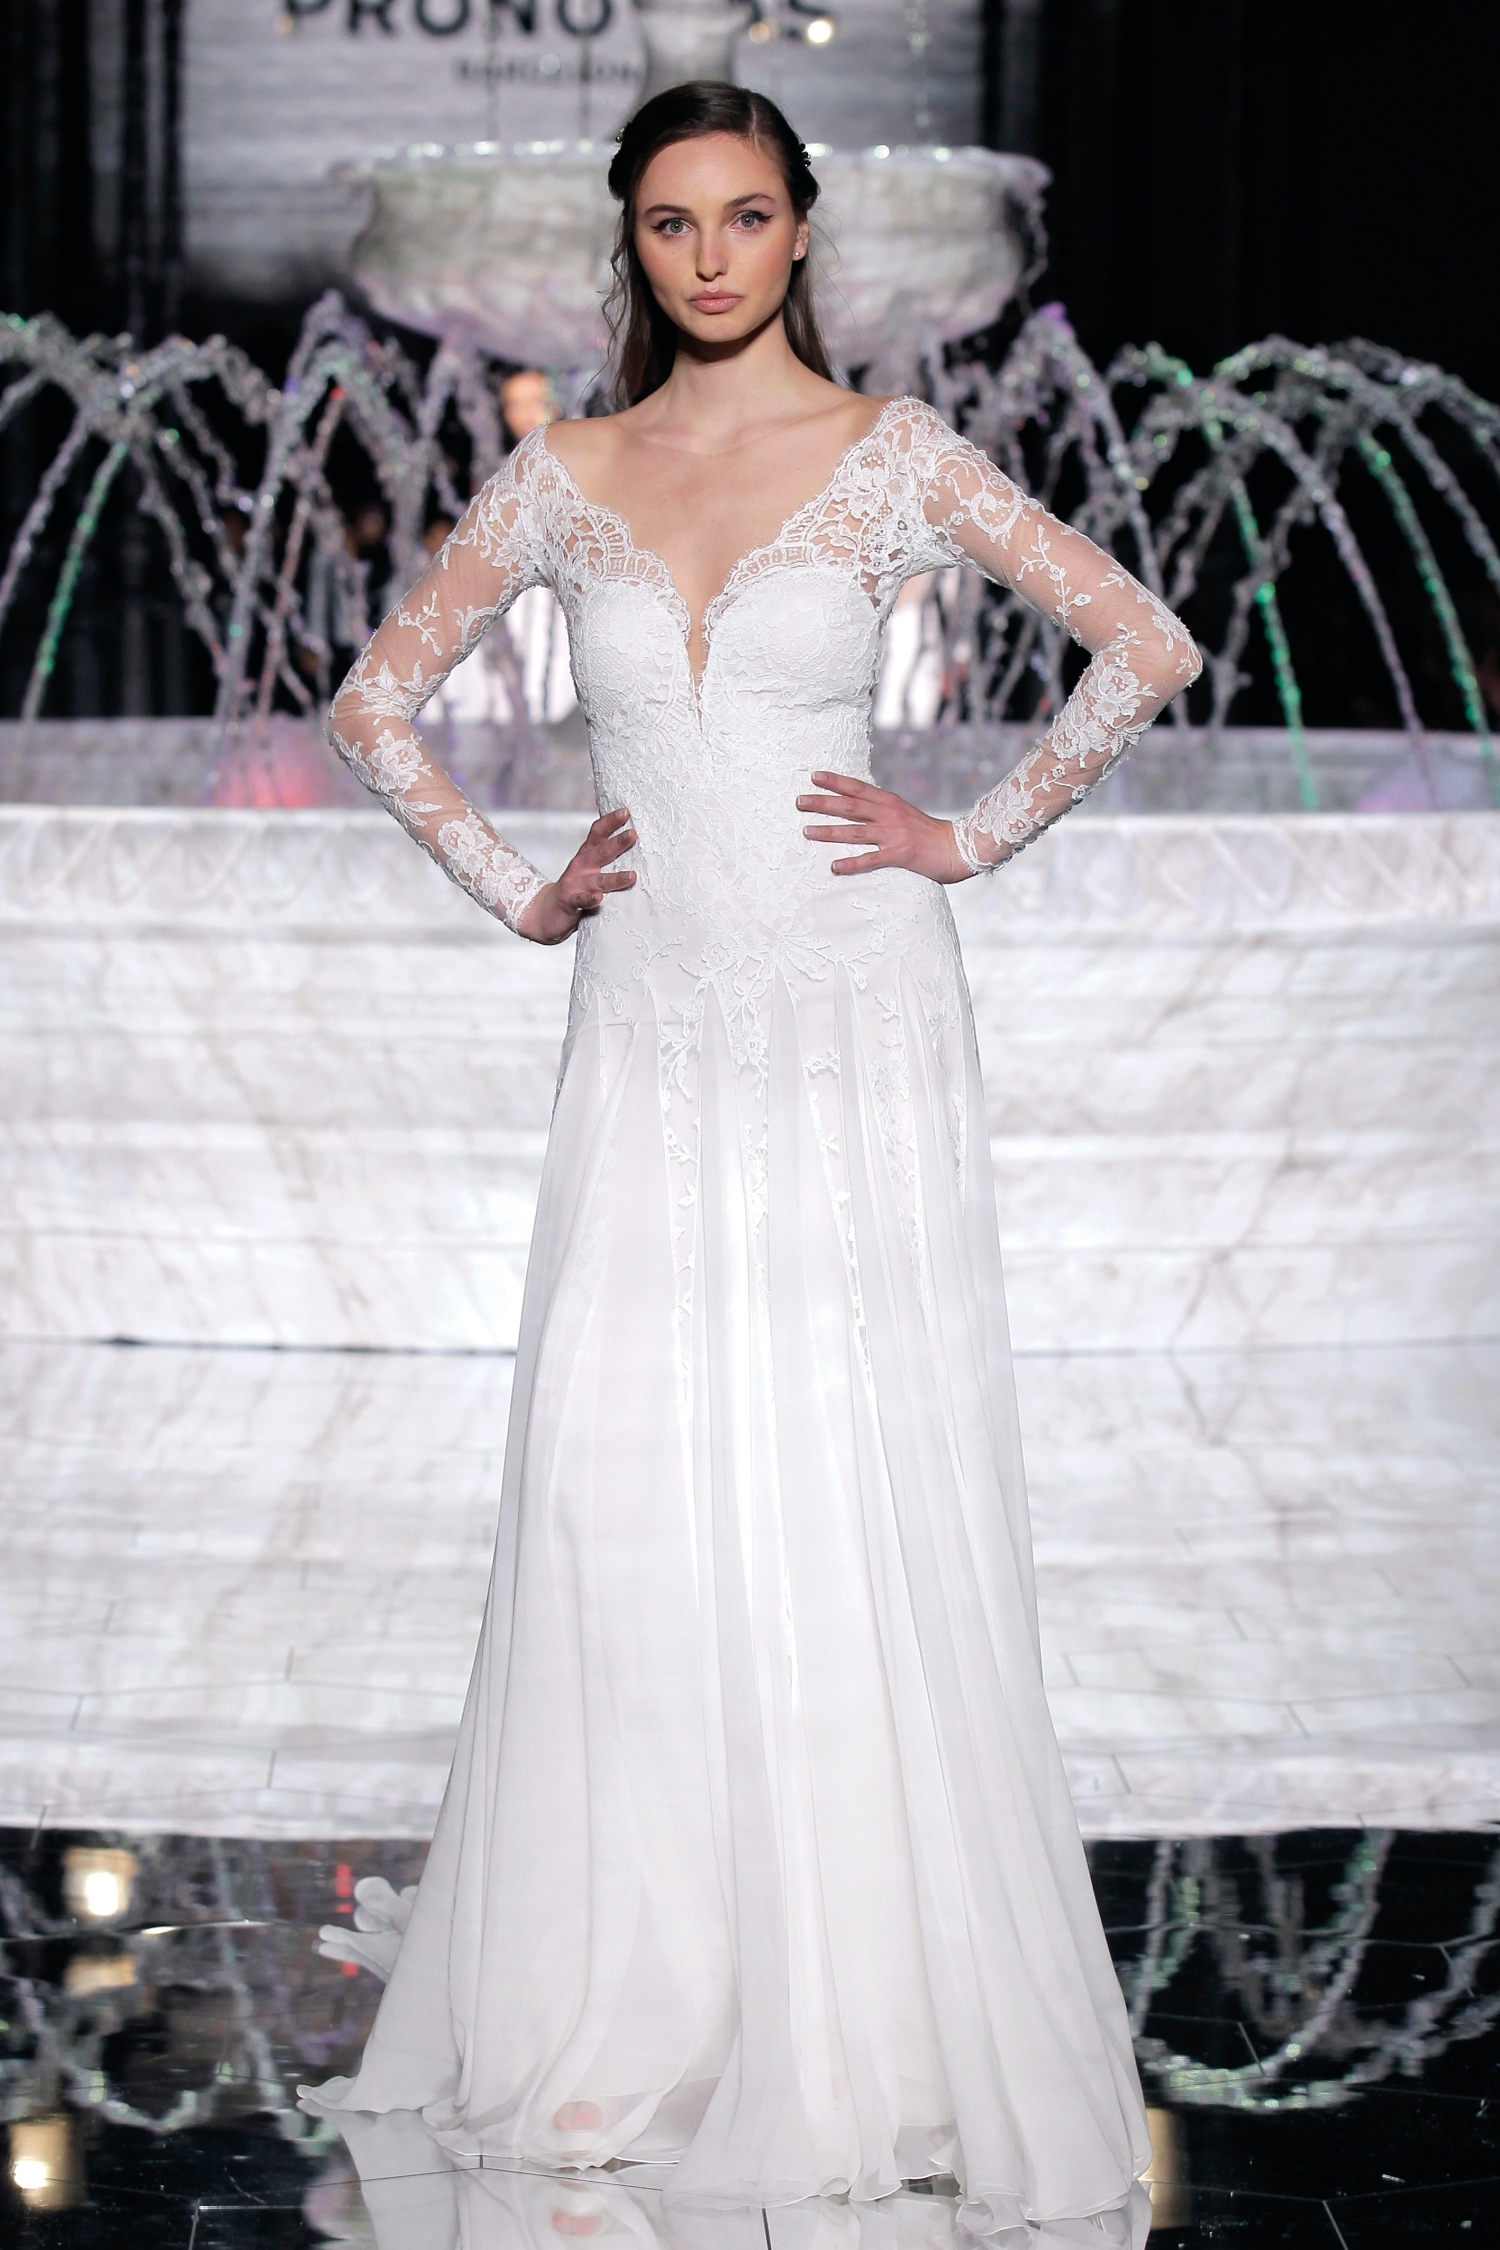 1-PRONOVIAS FASHION SHOW_ Rosana